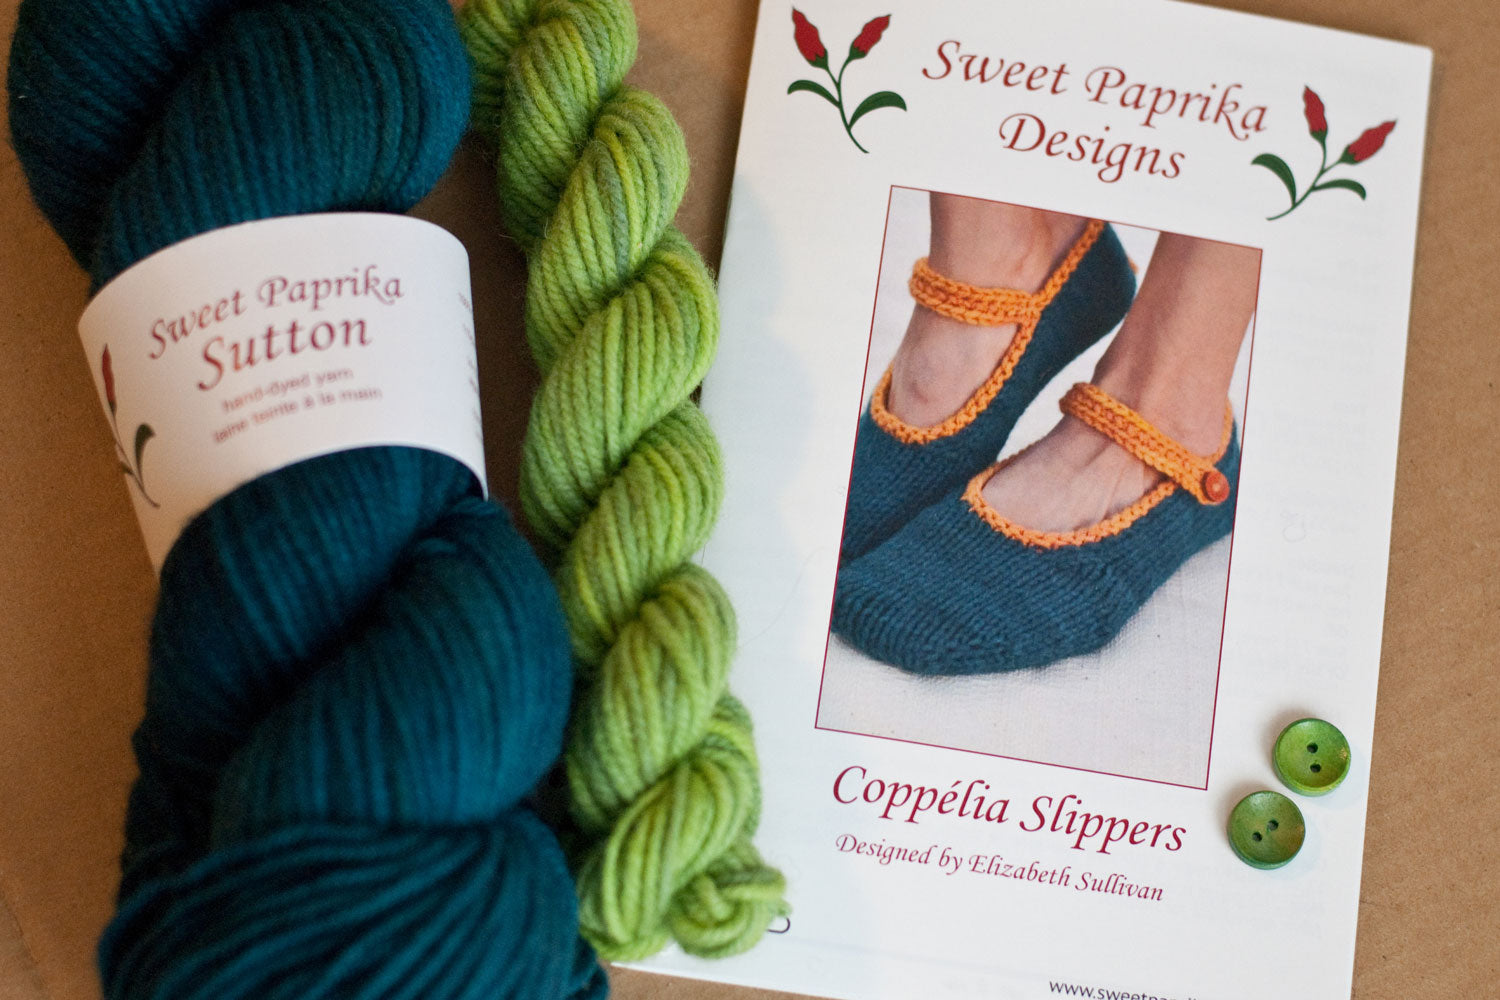 Kit components: knitting pattern, bulky yarn in teal and bright green, green buttons